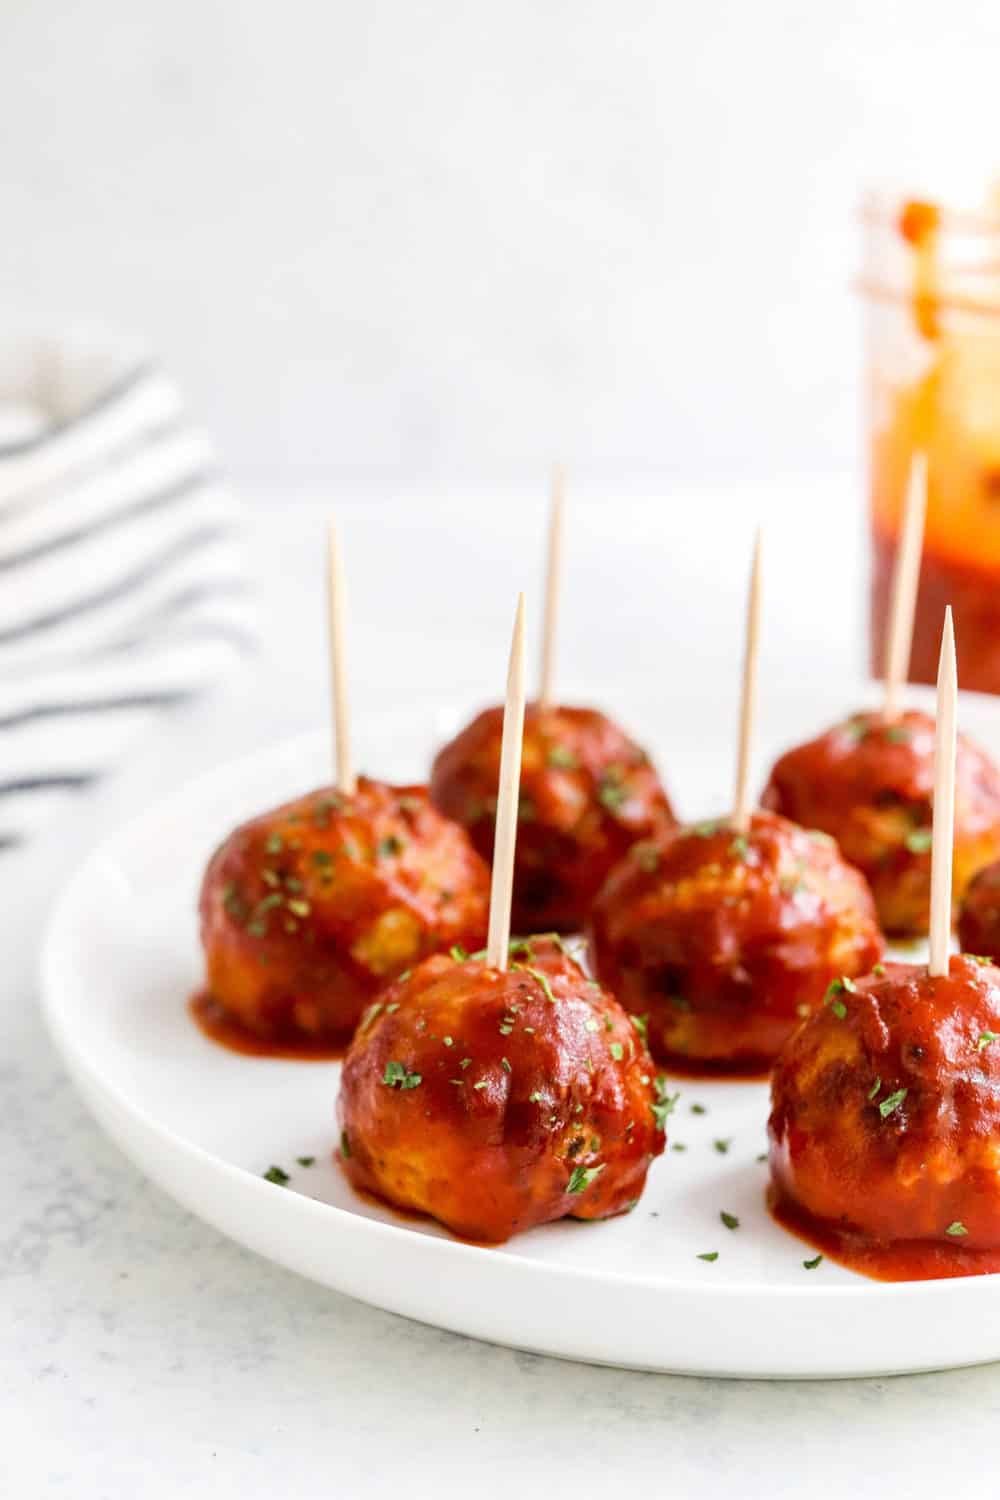 Round white plate with bbq meatballs with toothpicks stuck in them spread onto the plate with a striped towel and jar of bbq sauce behind it.